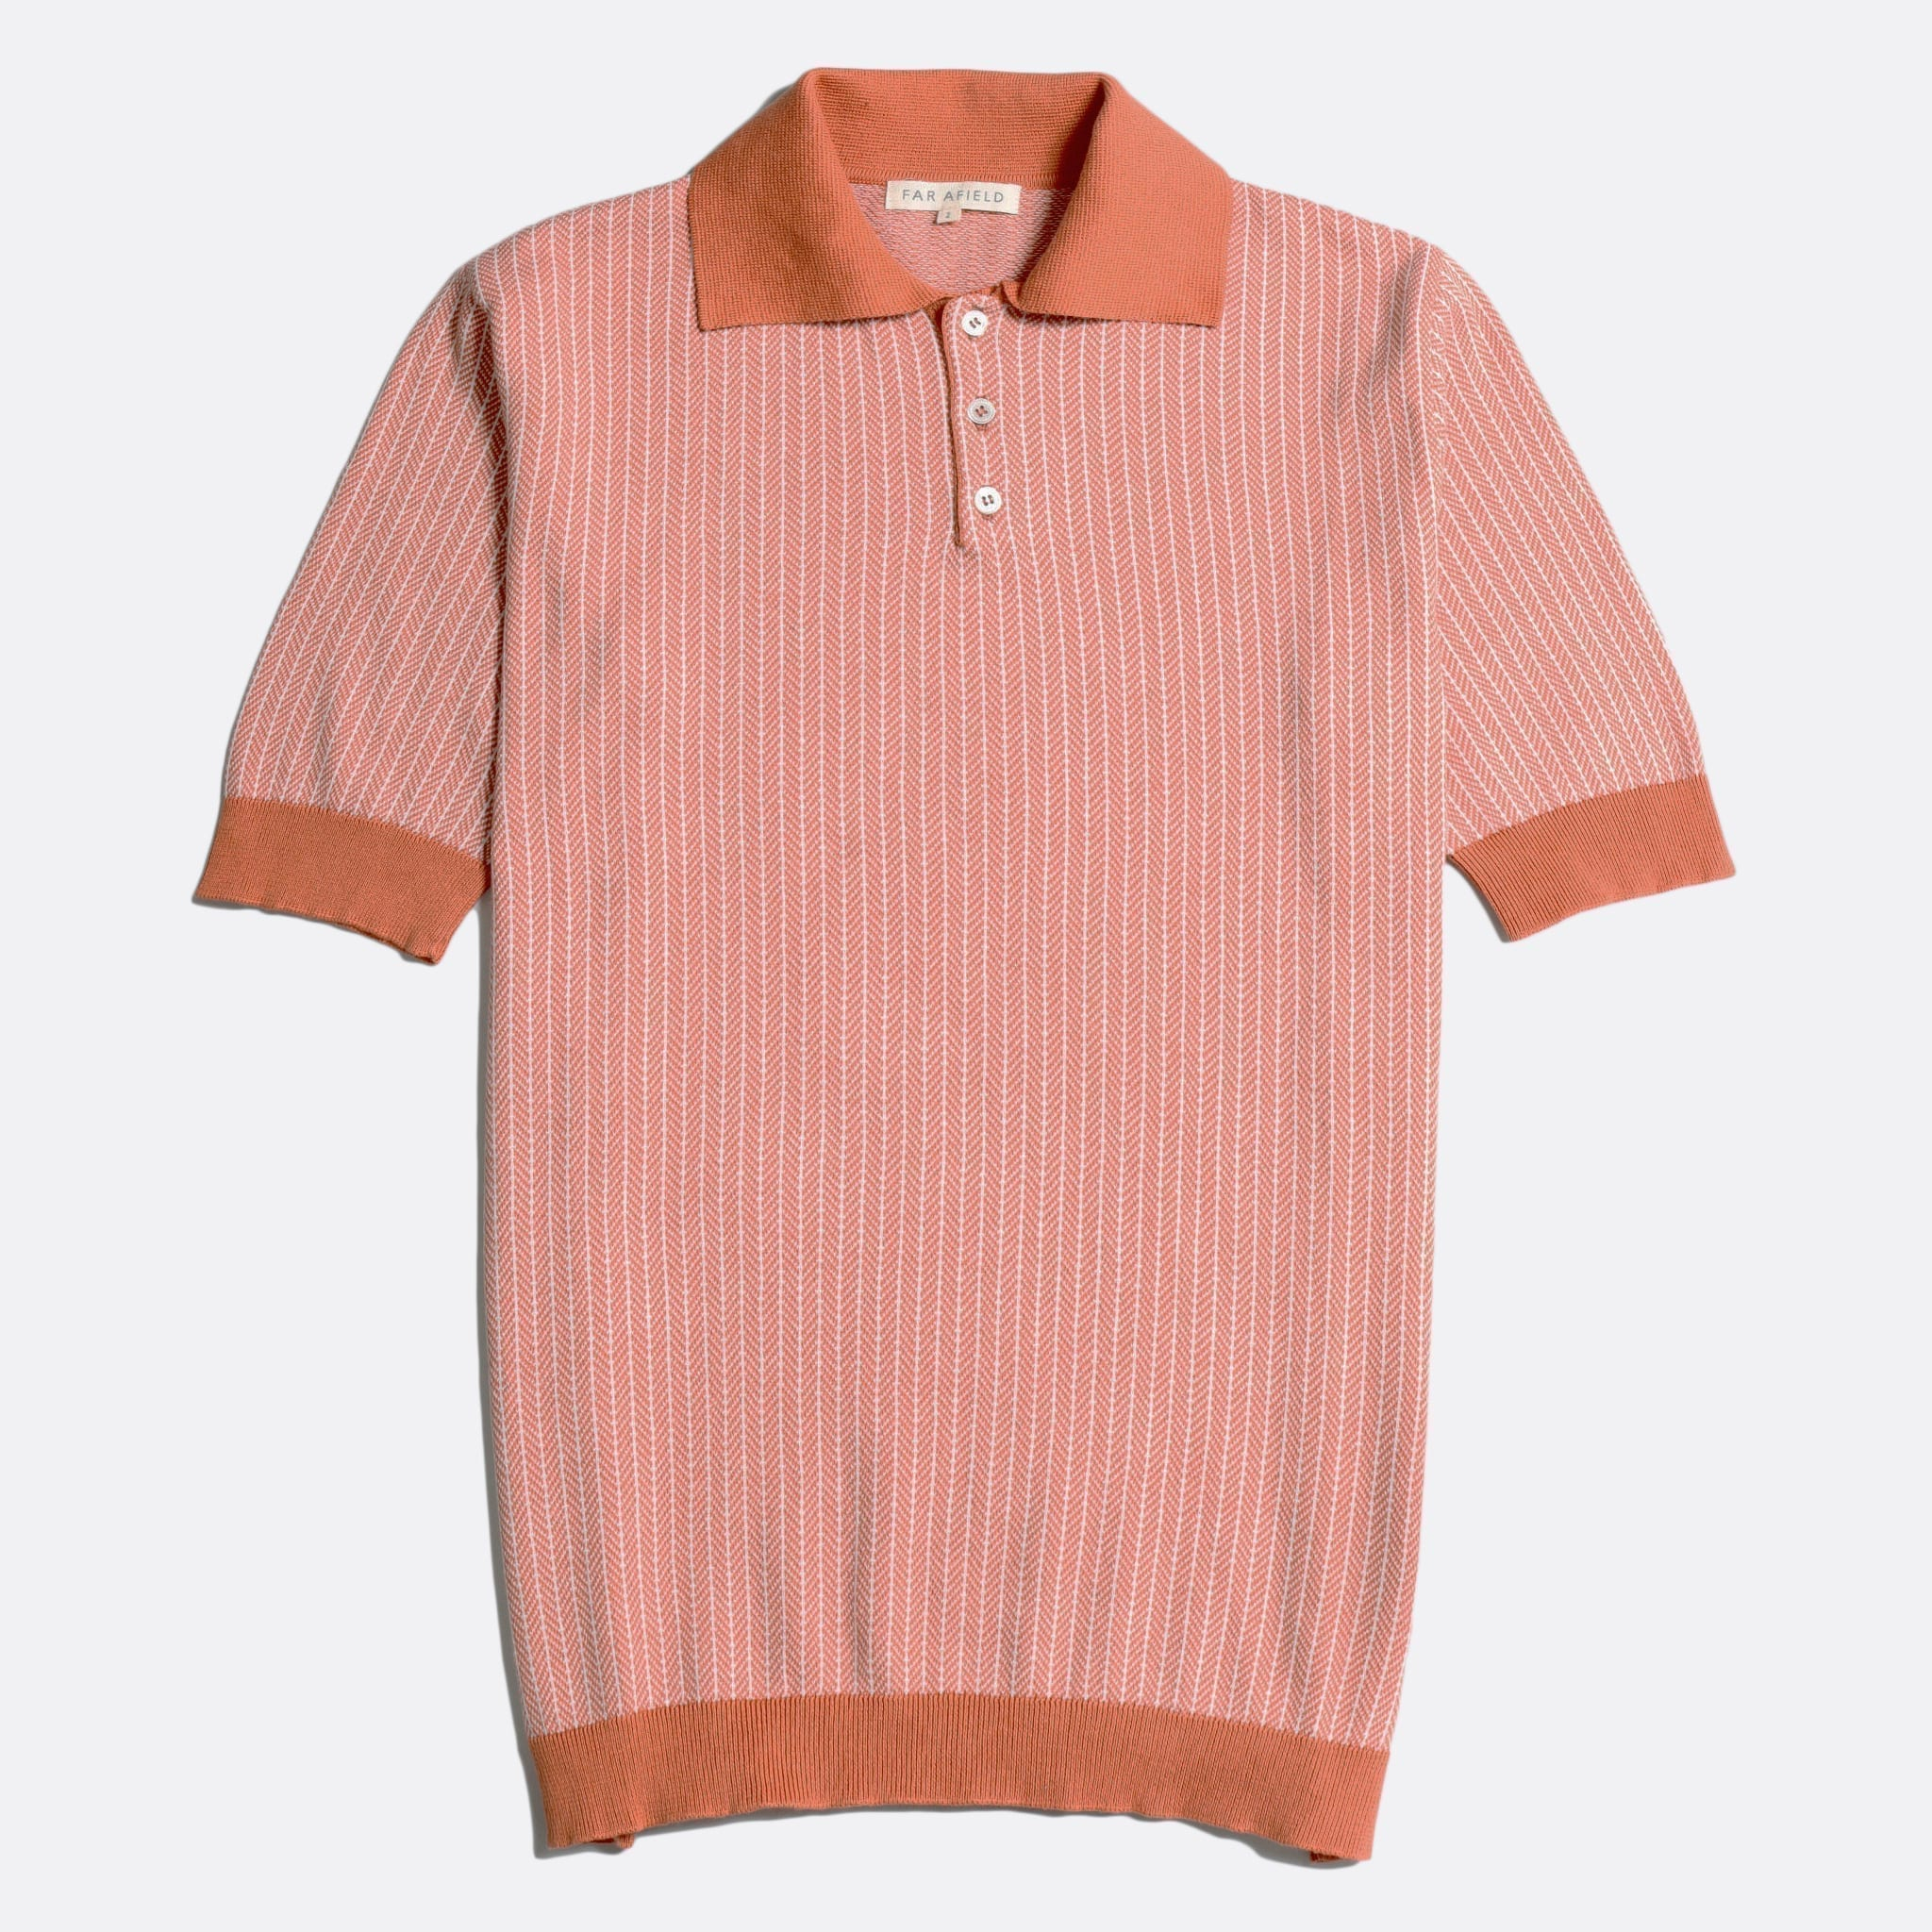 Far Afield Blakey Short Sleeve Polo a Arabesque Orange/White Sand Organic Cotton Fabric Short Sleeve Polo Mid Century Inspired